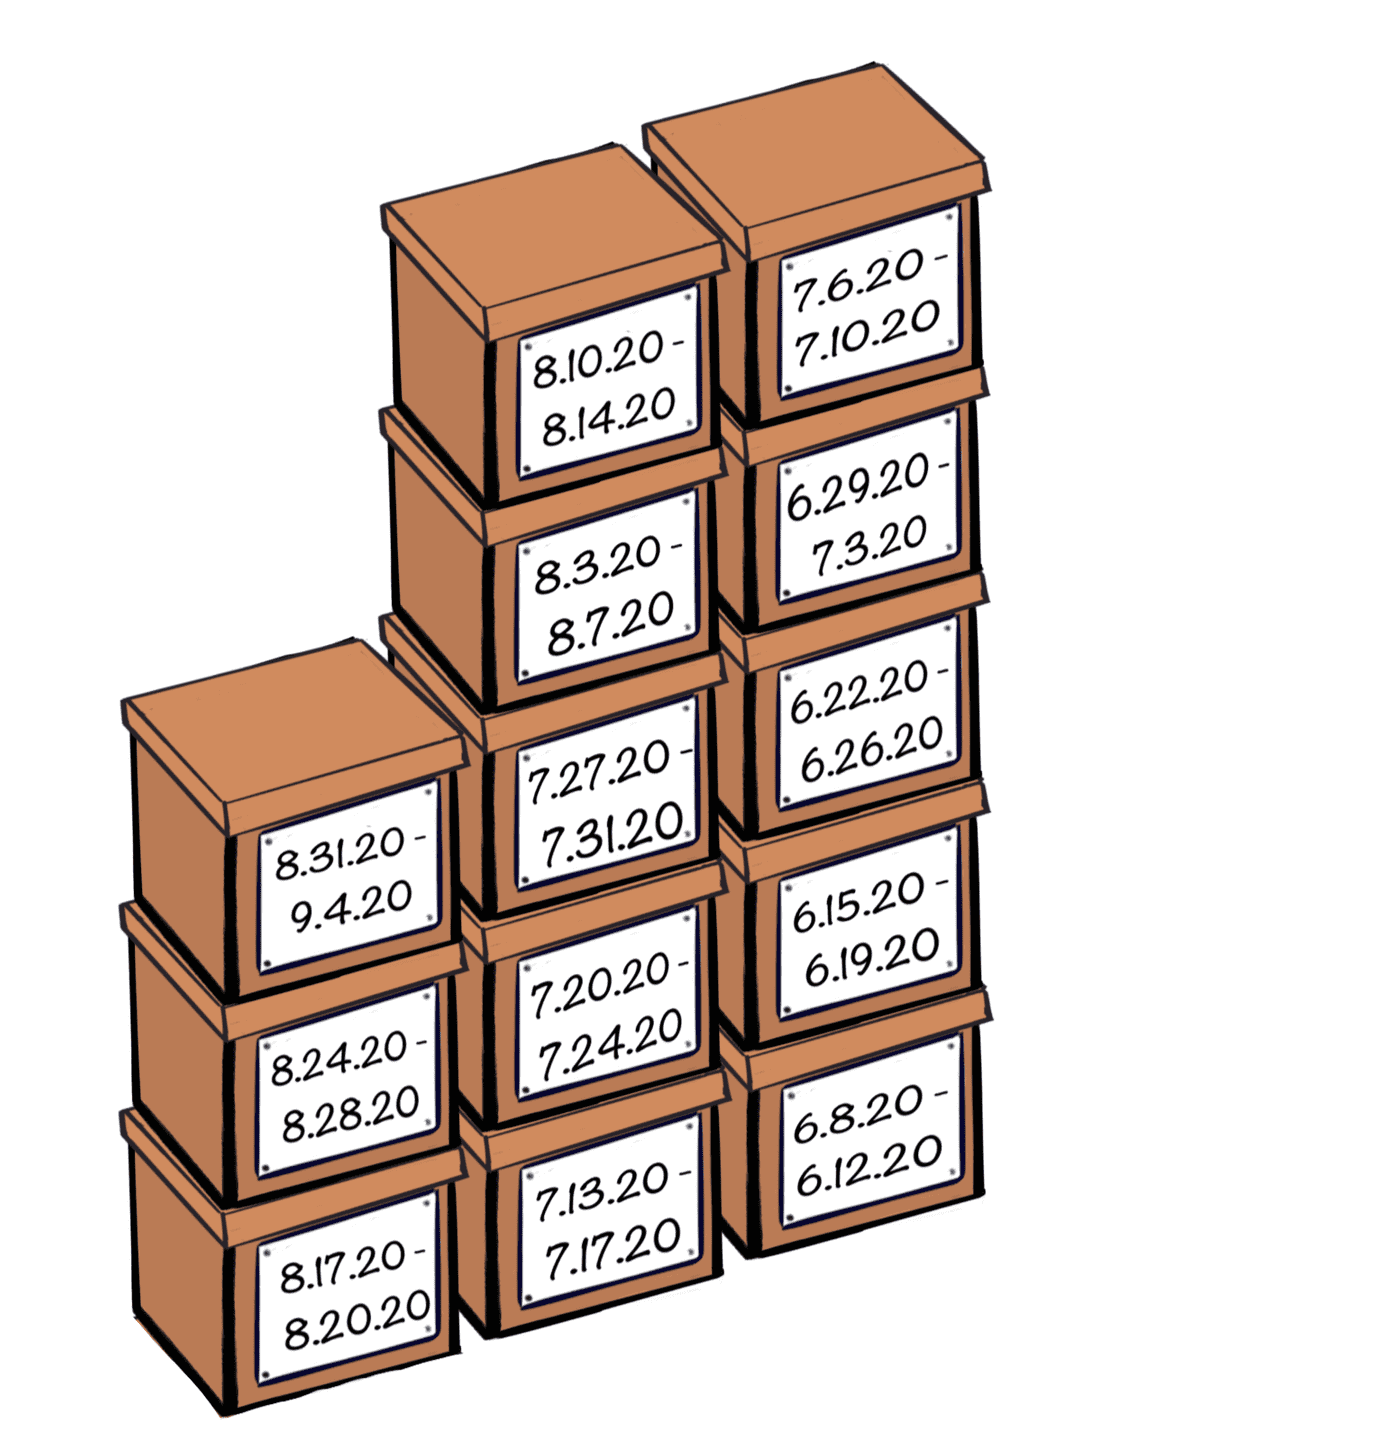 three stacks of cardboard boxes, each labeled with a range of dates